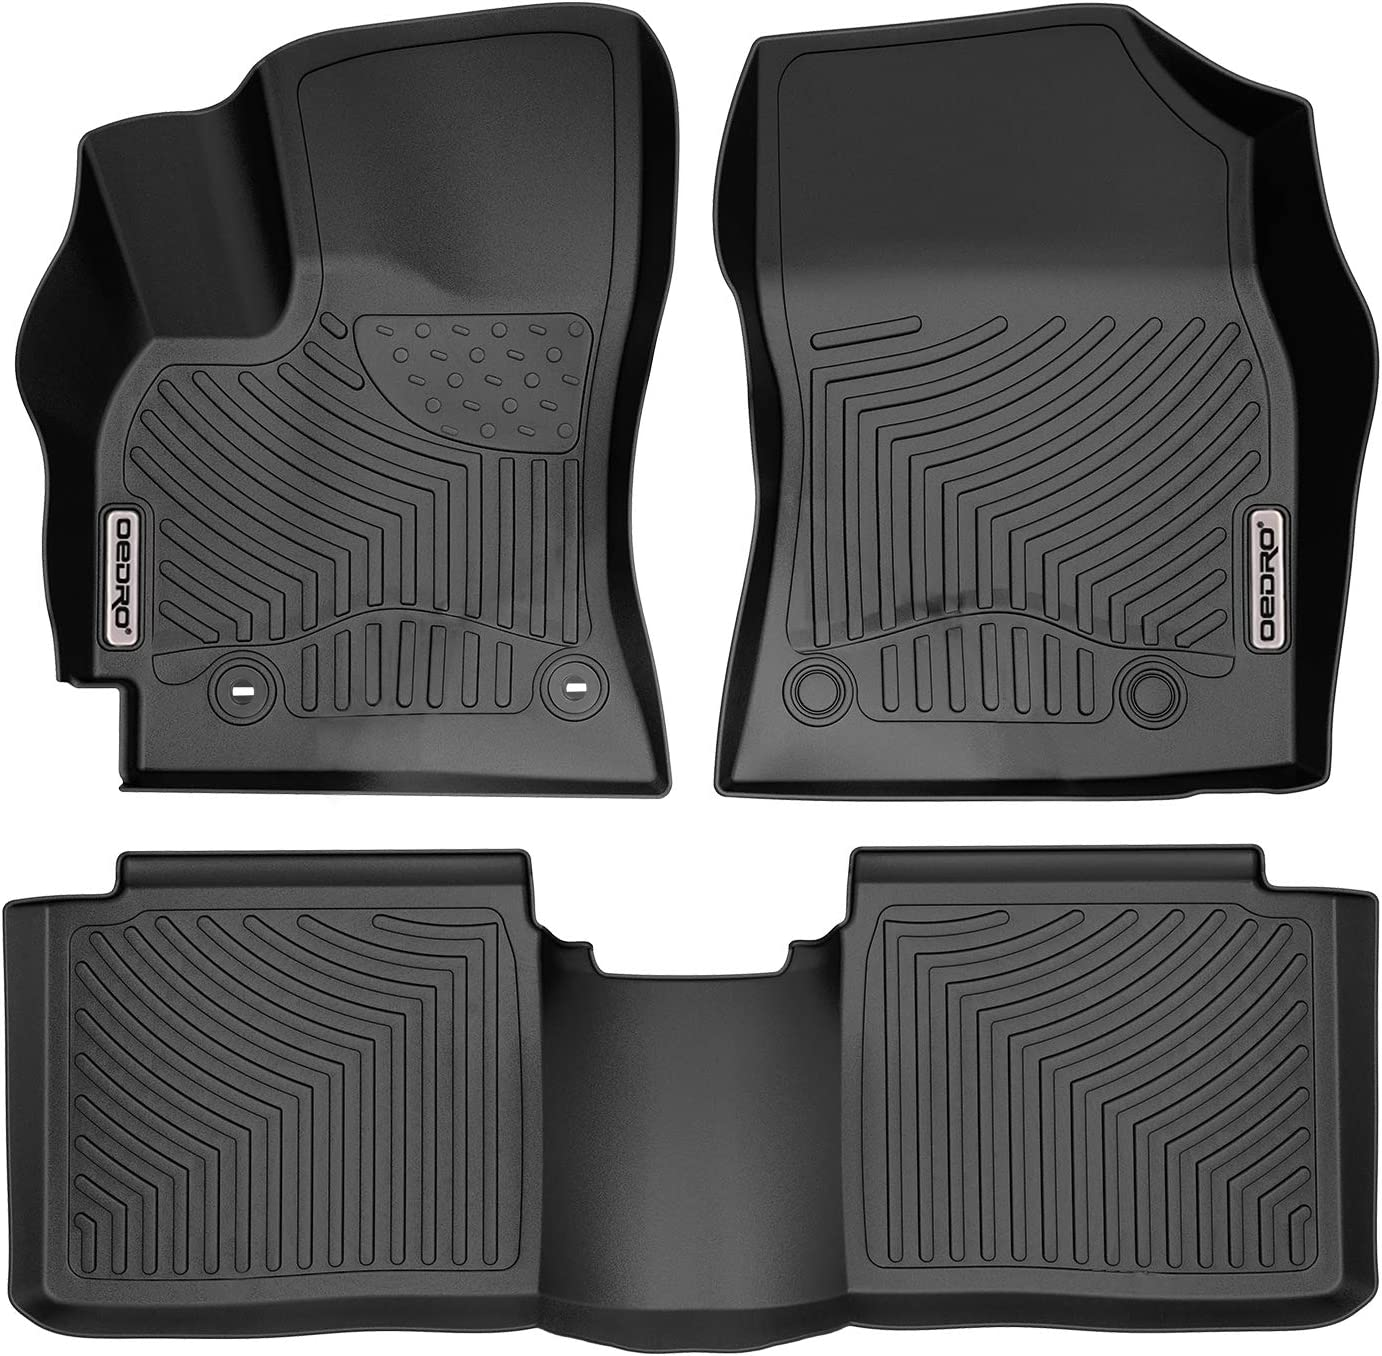 oEdRo Custom Fit Floor Mats for 2014-2016 Toyota Corolla with Automatic Transmission, All Weather Front & 2nd Seat Floor Liners